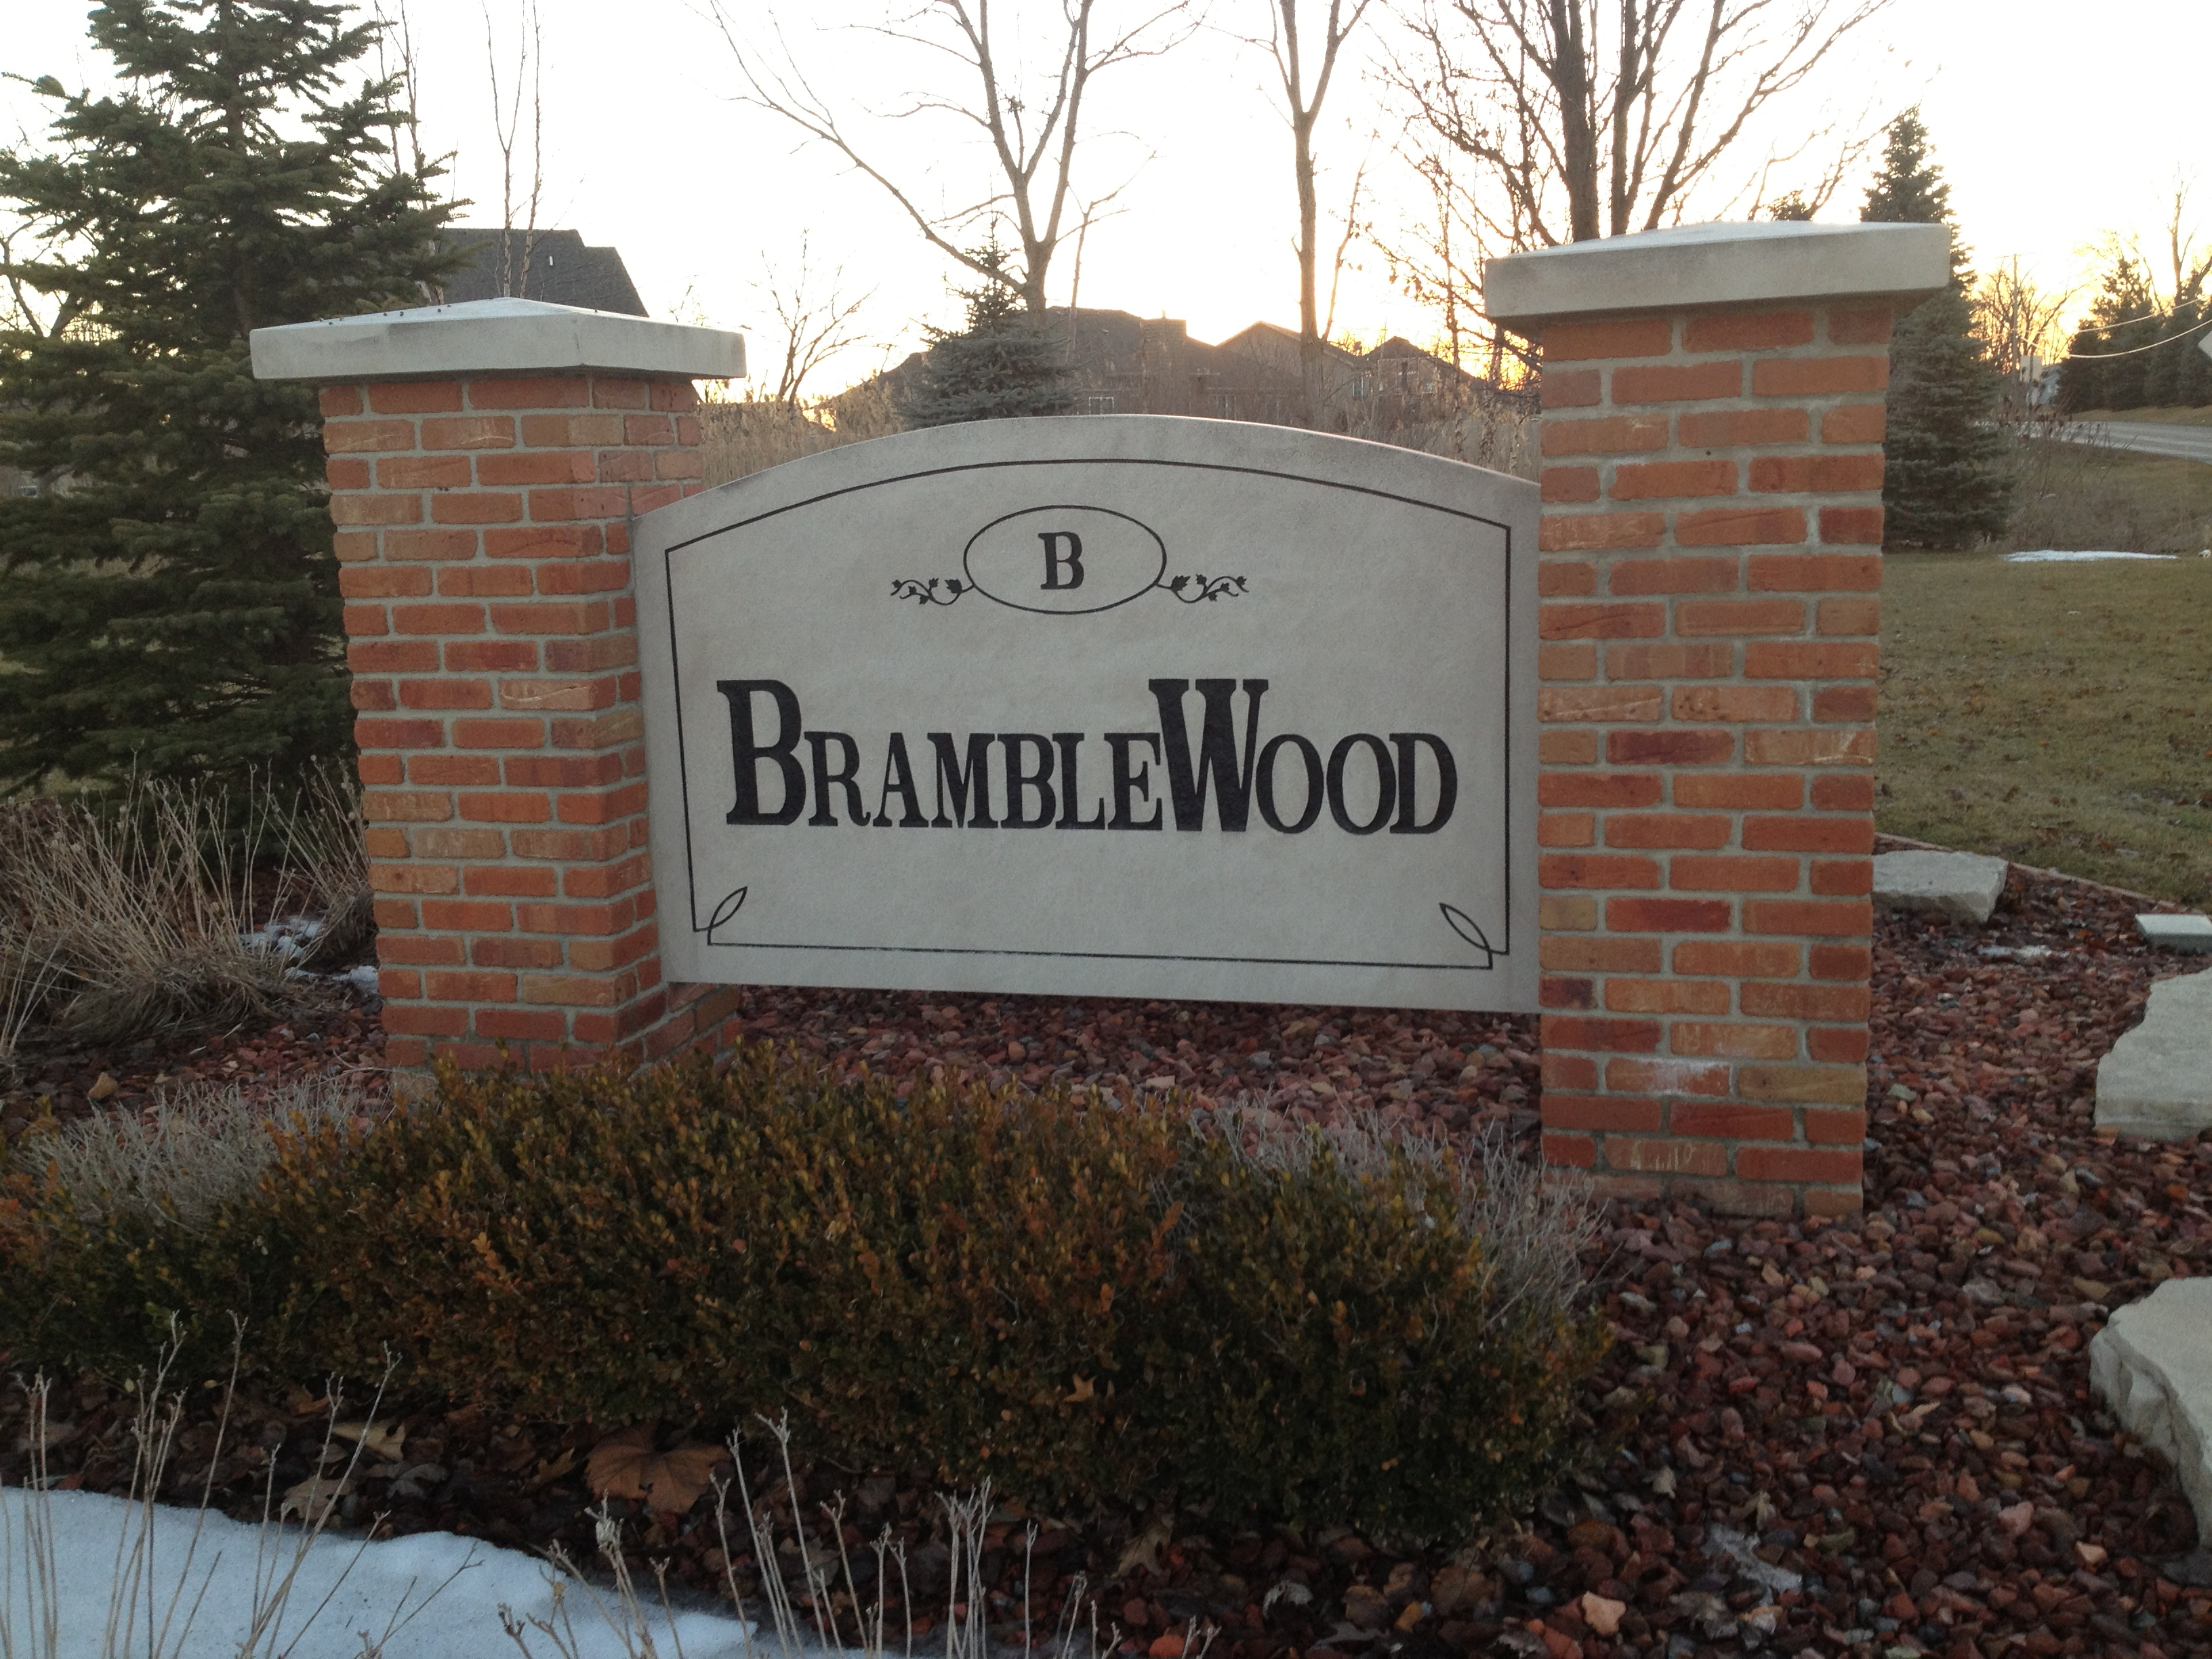 Bramblewood Saint John Indiana Realtor Homes for Sale